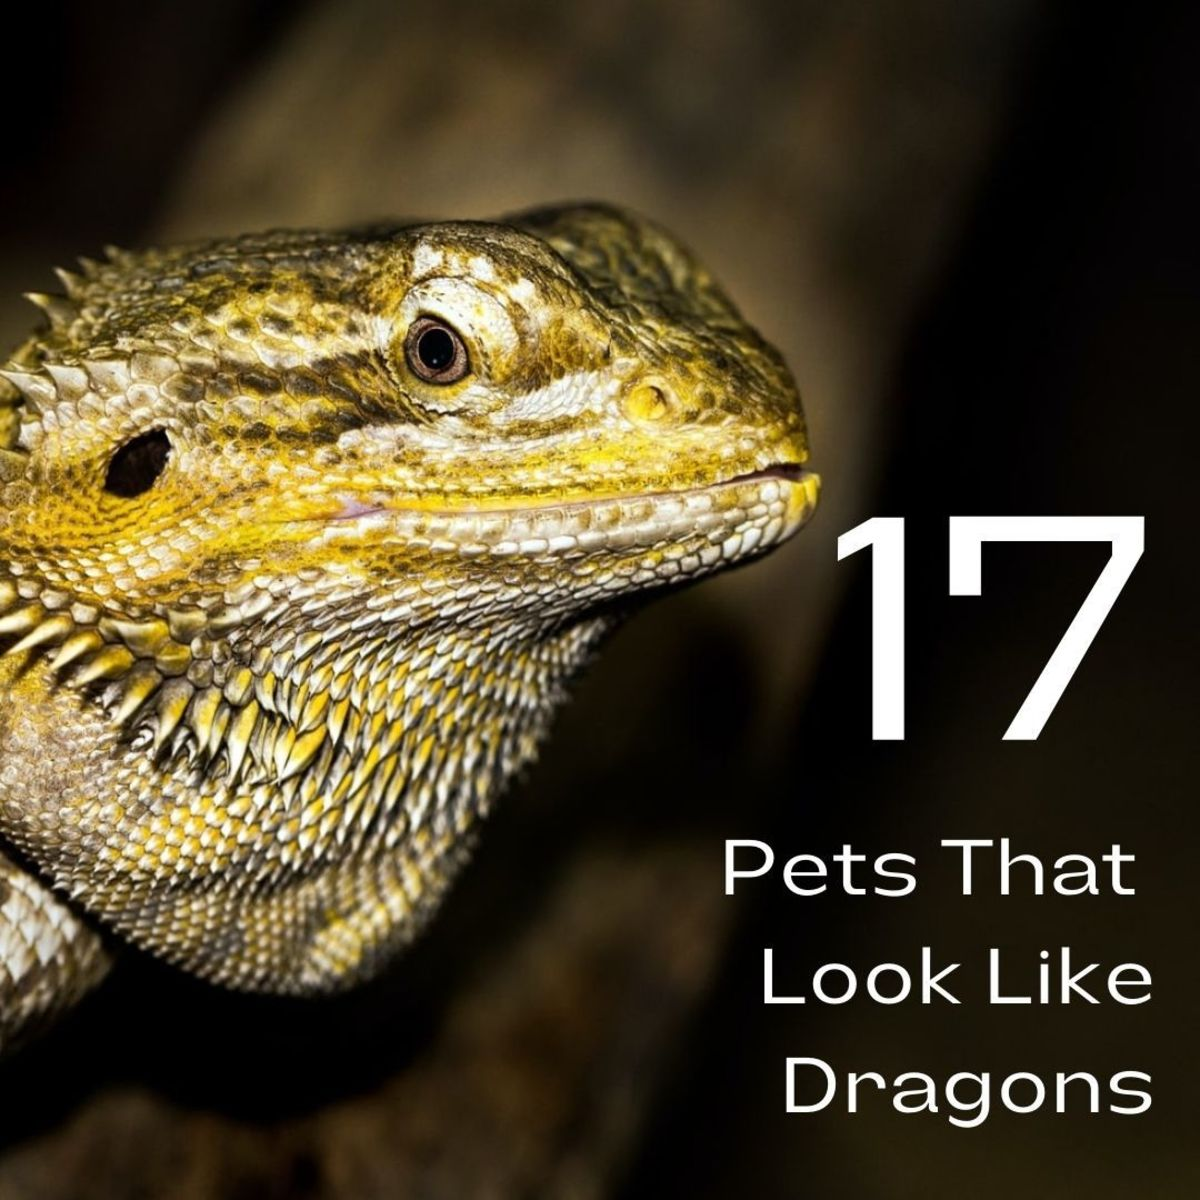 17 Pets You Can Legally Own That Look Like Dragons